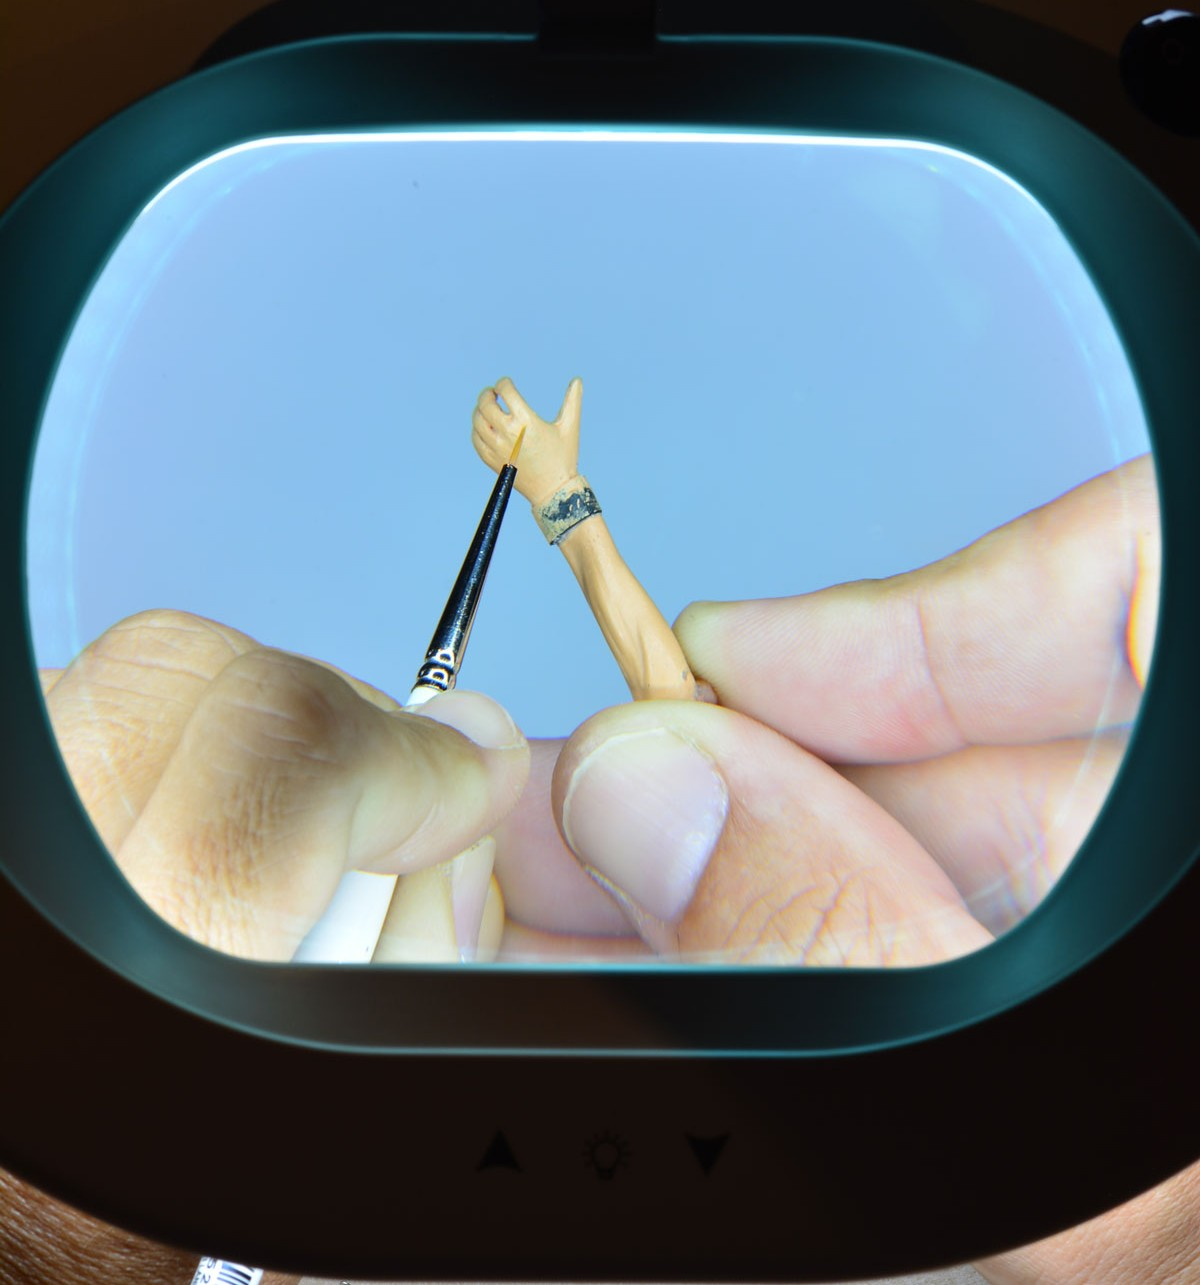 view through magnifier lamp showing small brush painting model hand